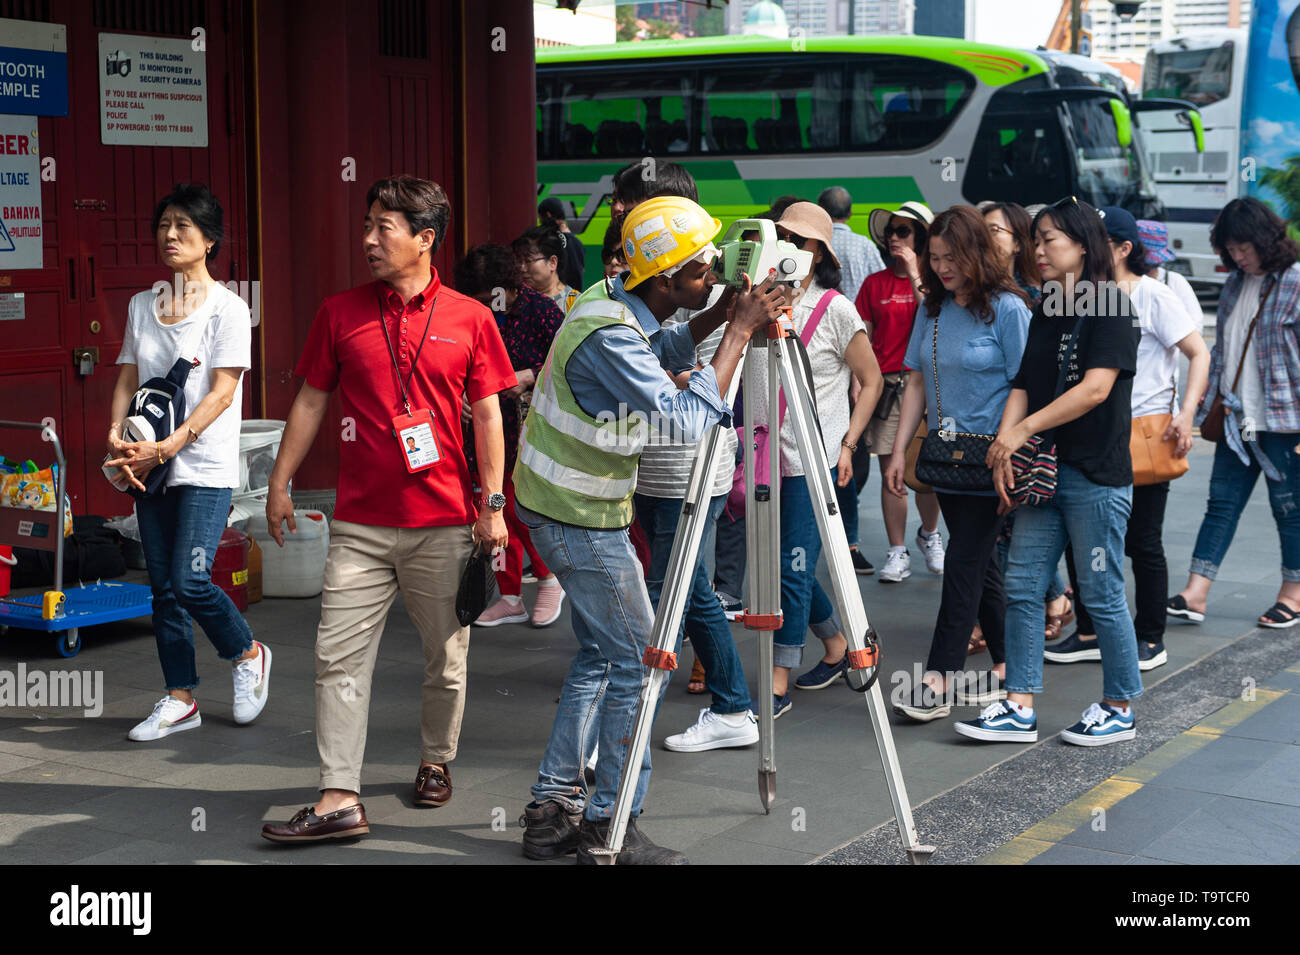 29.03.2019, Singapore, Republic of Singapore, Asia - A surveyor is taking readings from a theodolite as a group of tourists is passing by at the Buddh - Stock Image